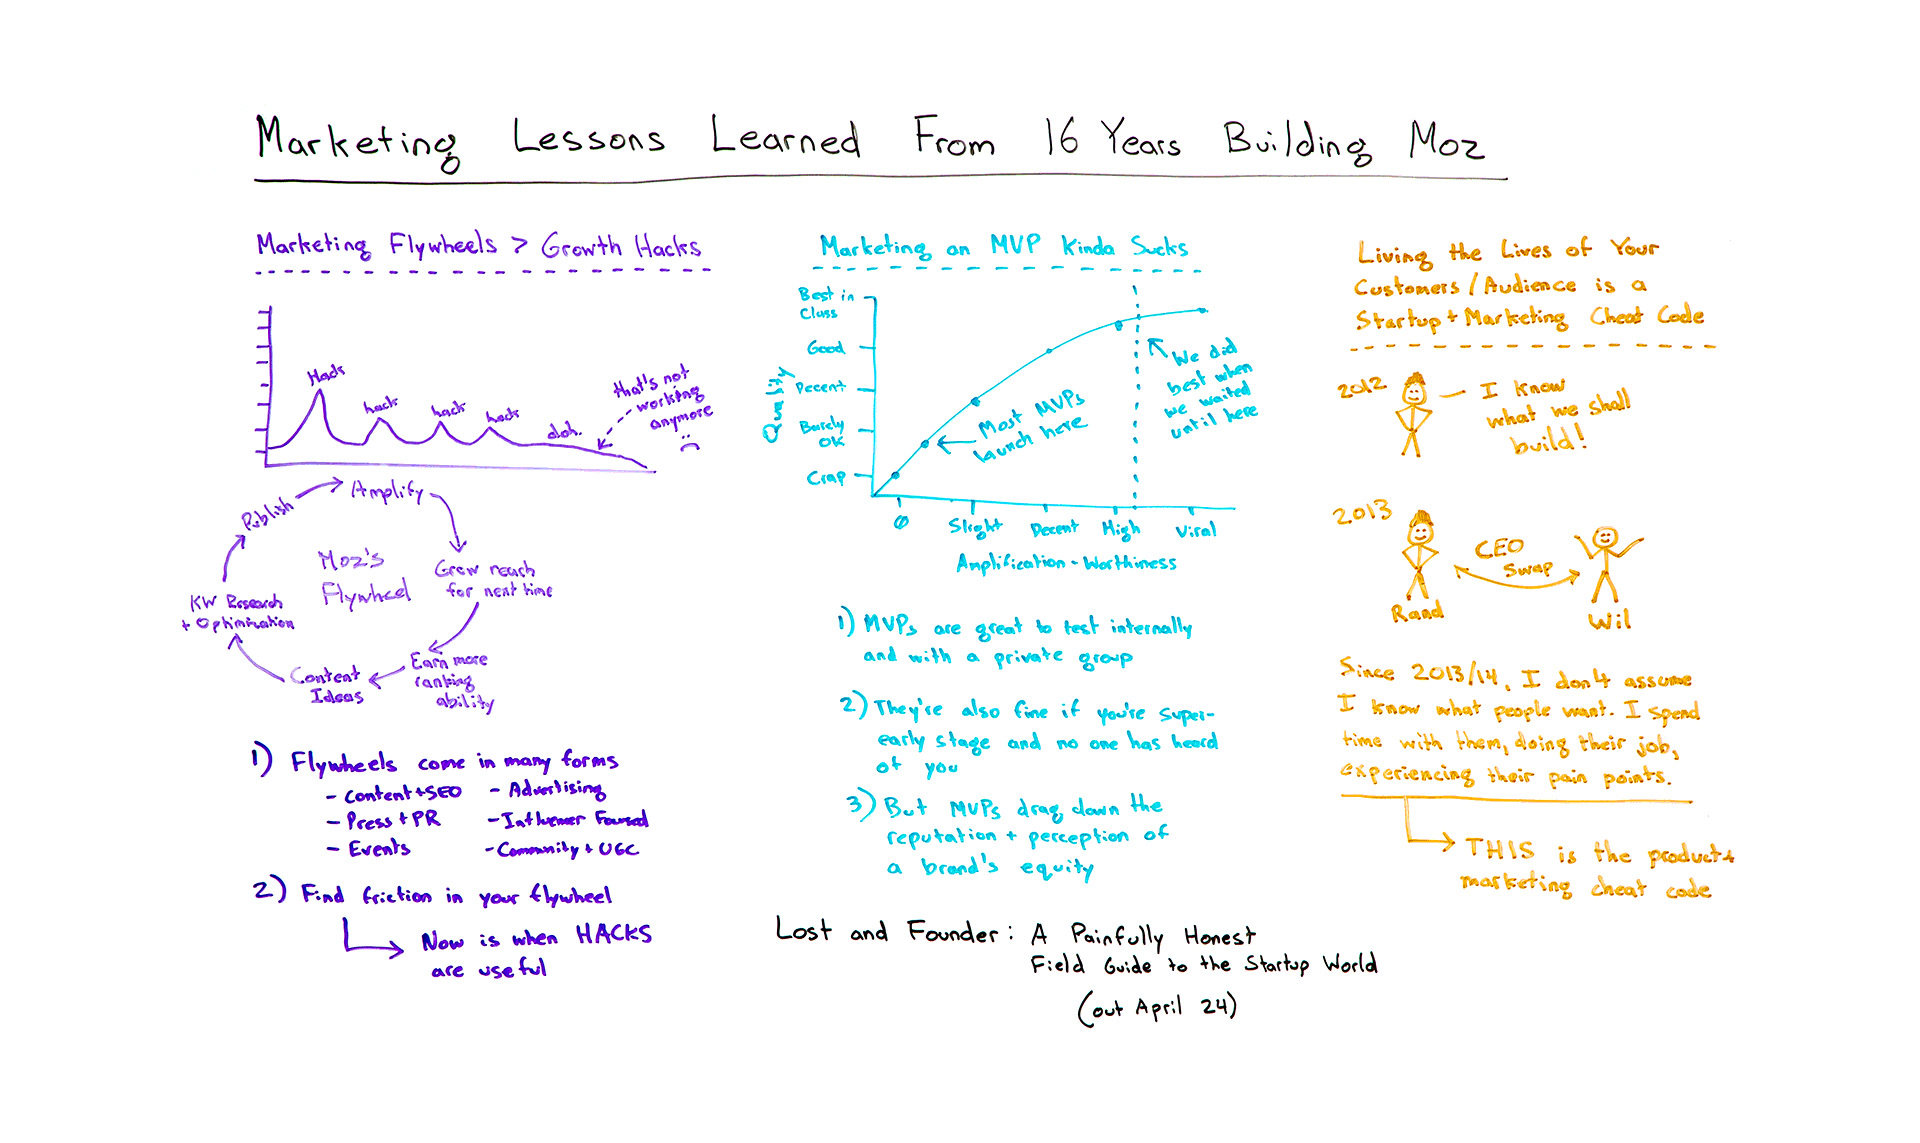 Marketing Lessons Learned from 16 Years of Building Moz